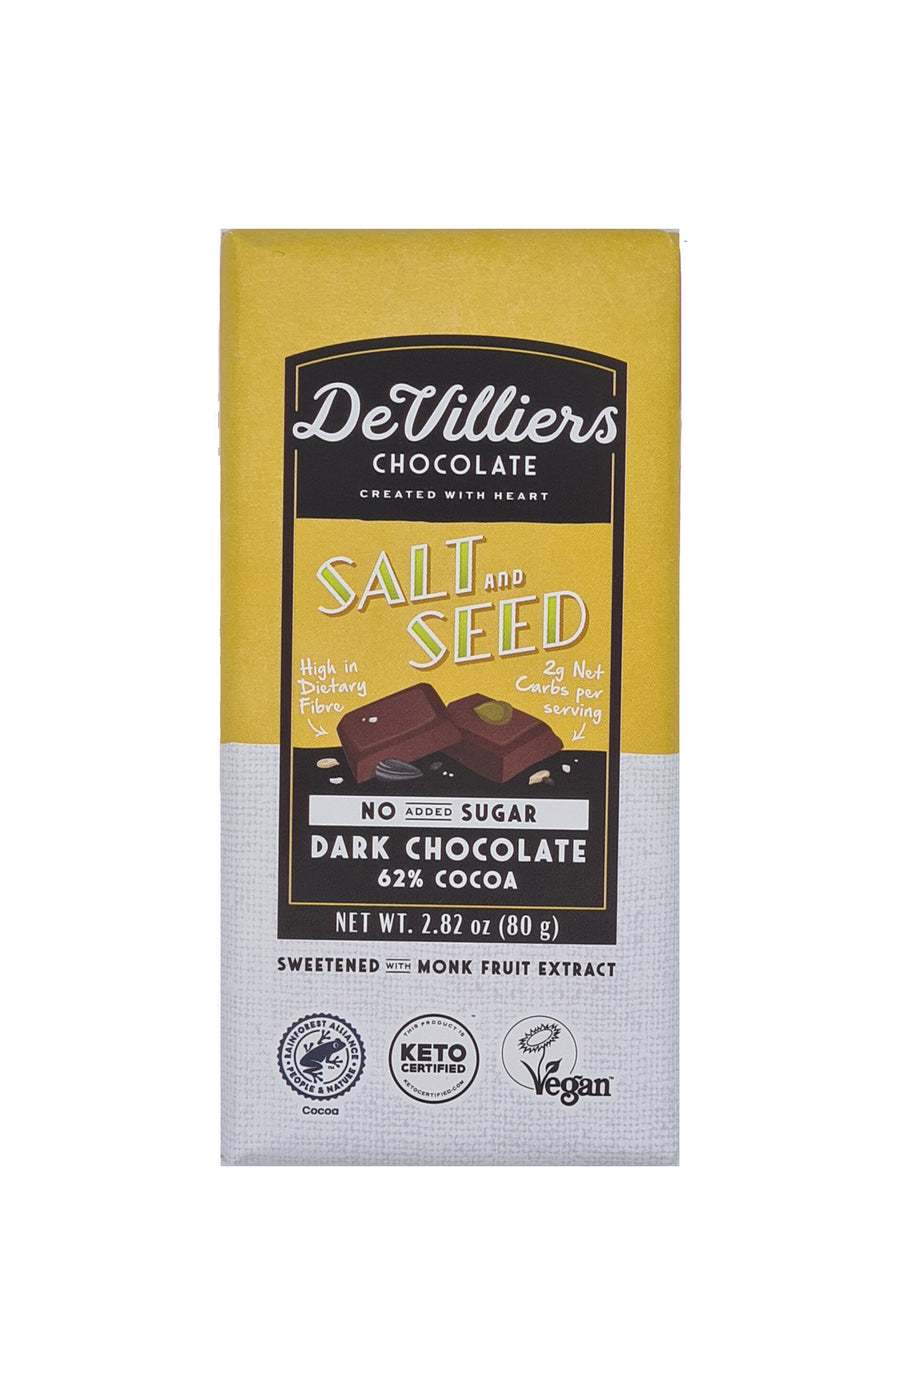 No-added-sugar 62% dark Seed and Salt Chocolate Bar 80g - de villiers chocolate us